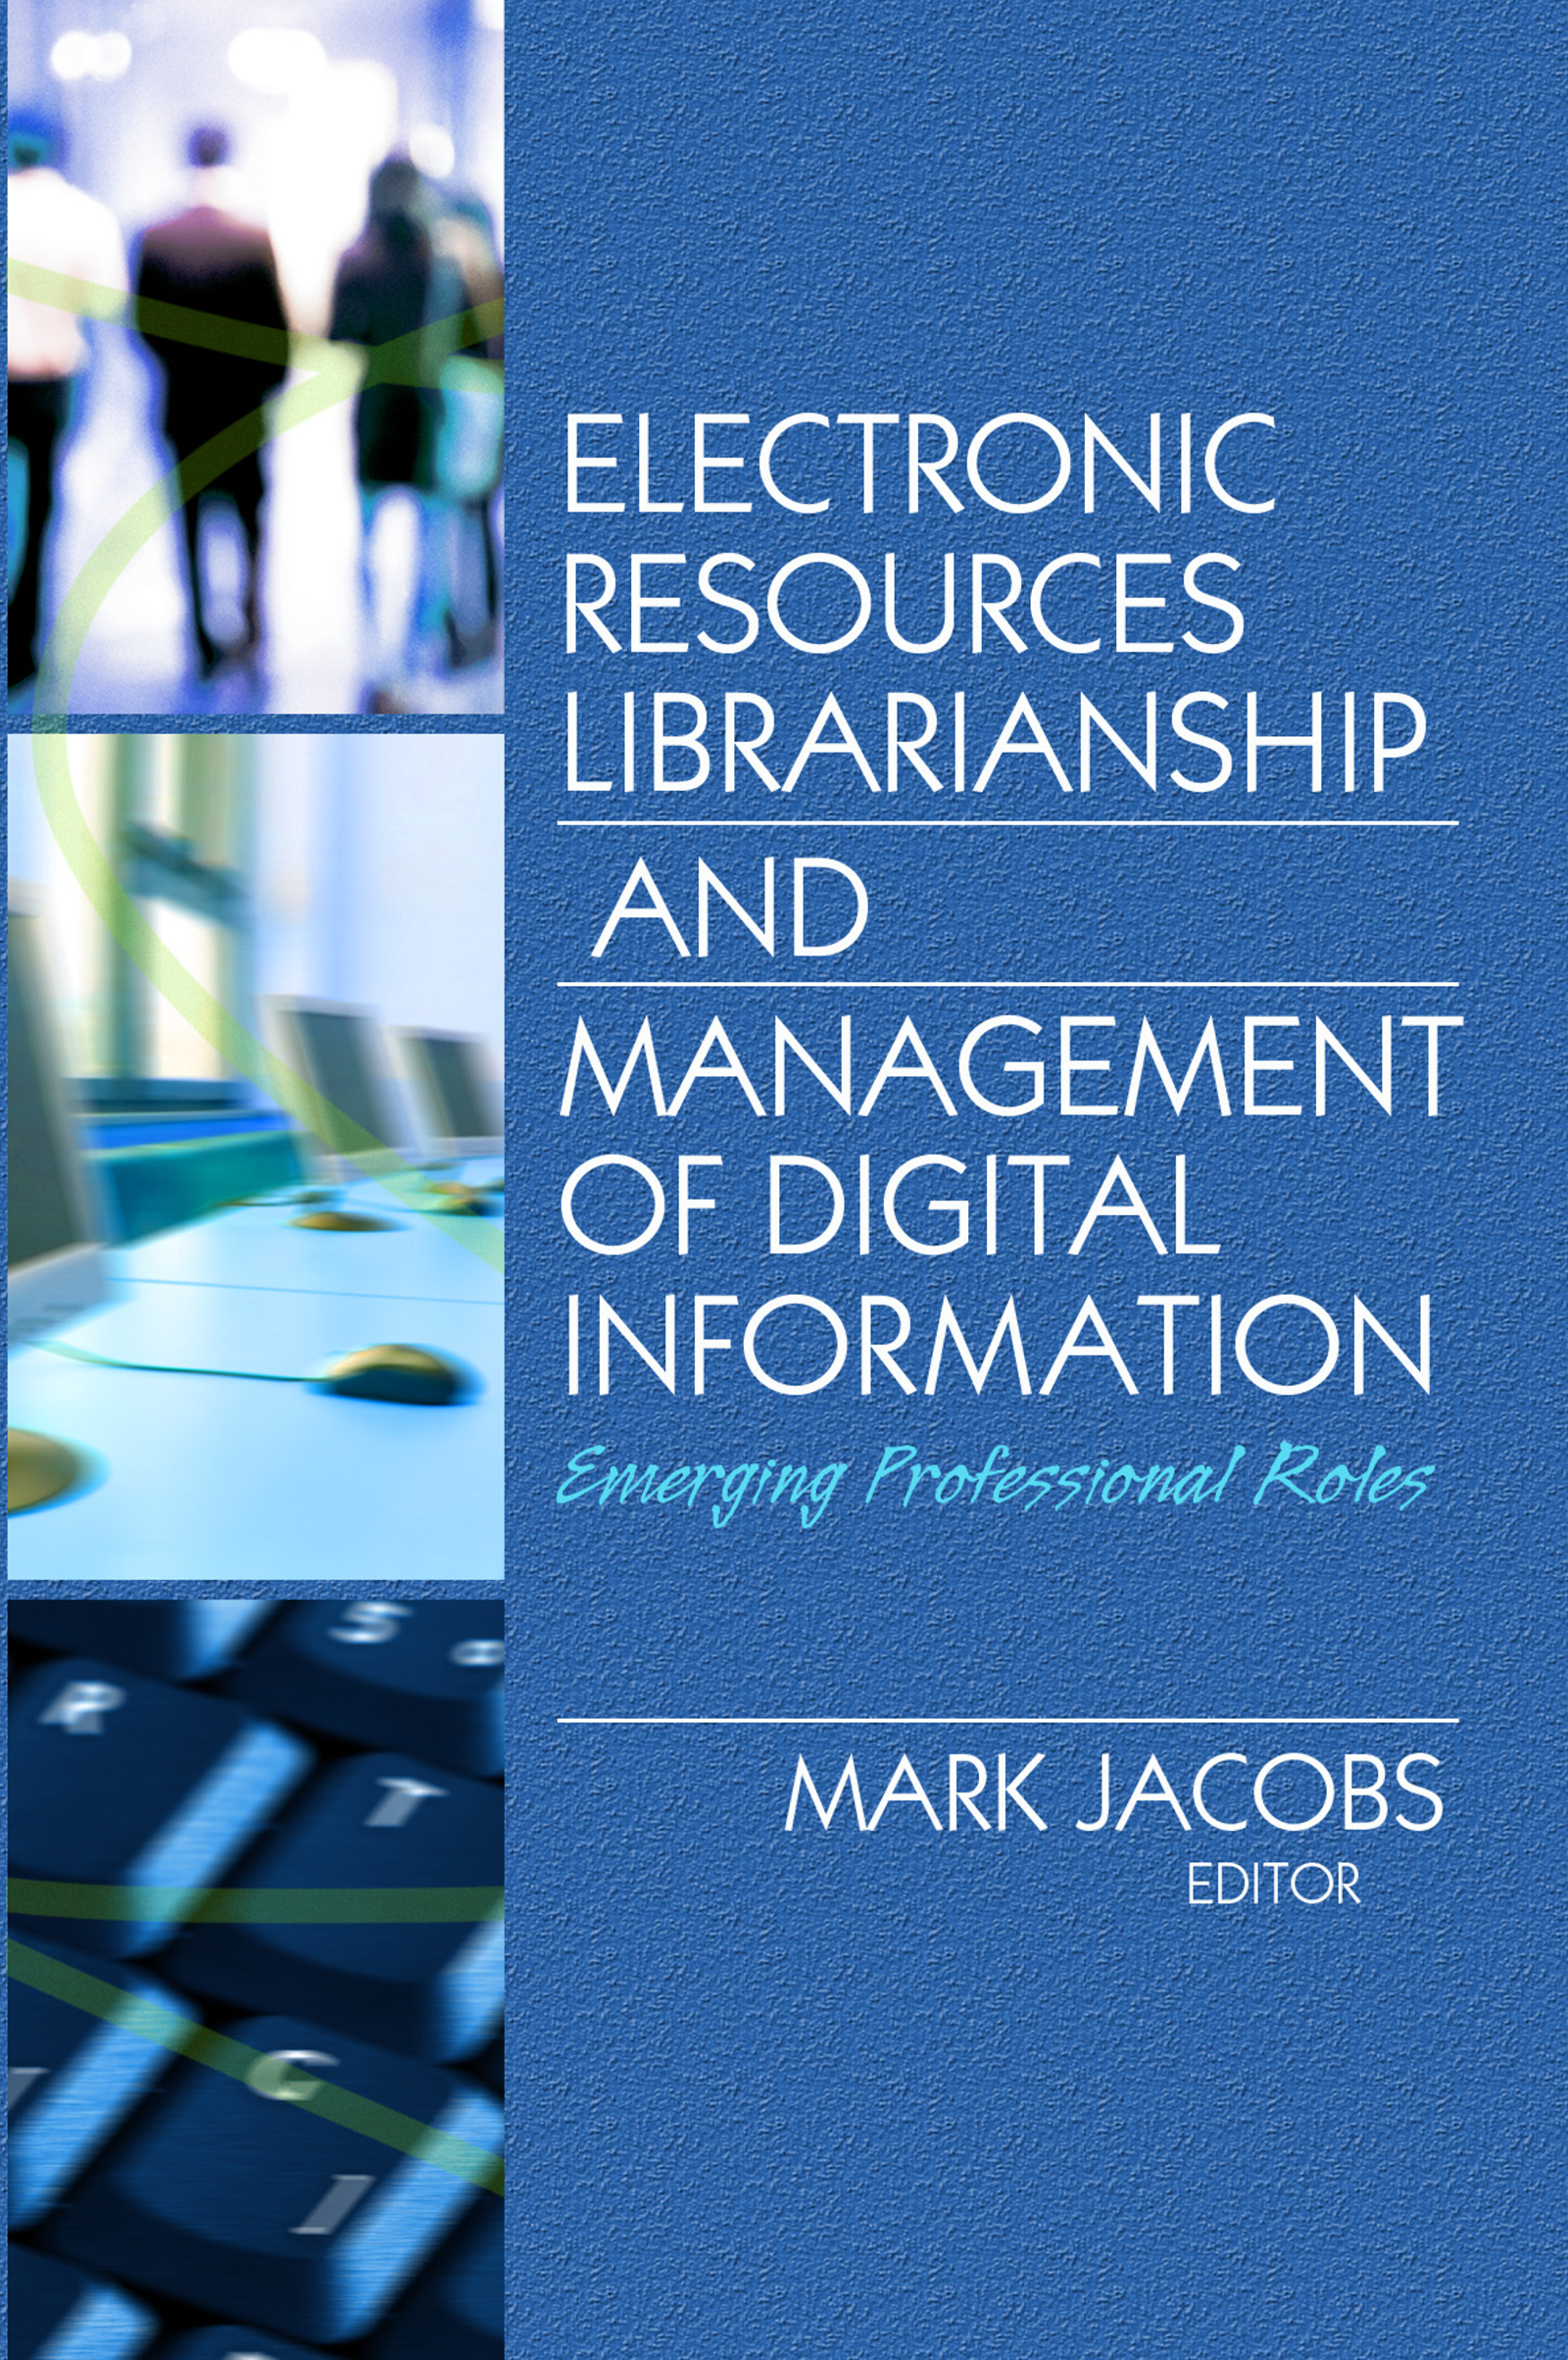 Electronic Resources Librarianship and Management of Digital Information: Emerging Professional Roles book cover